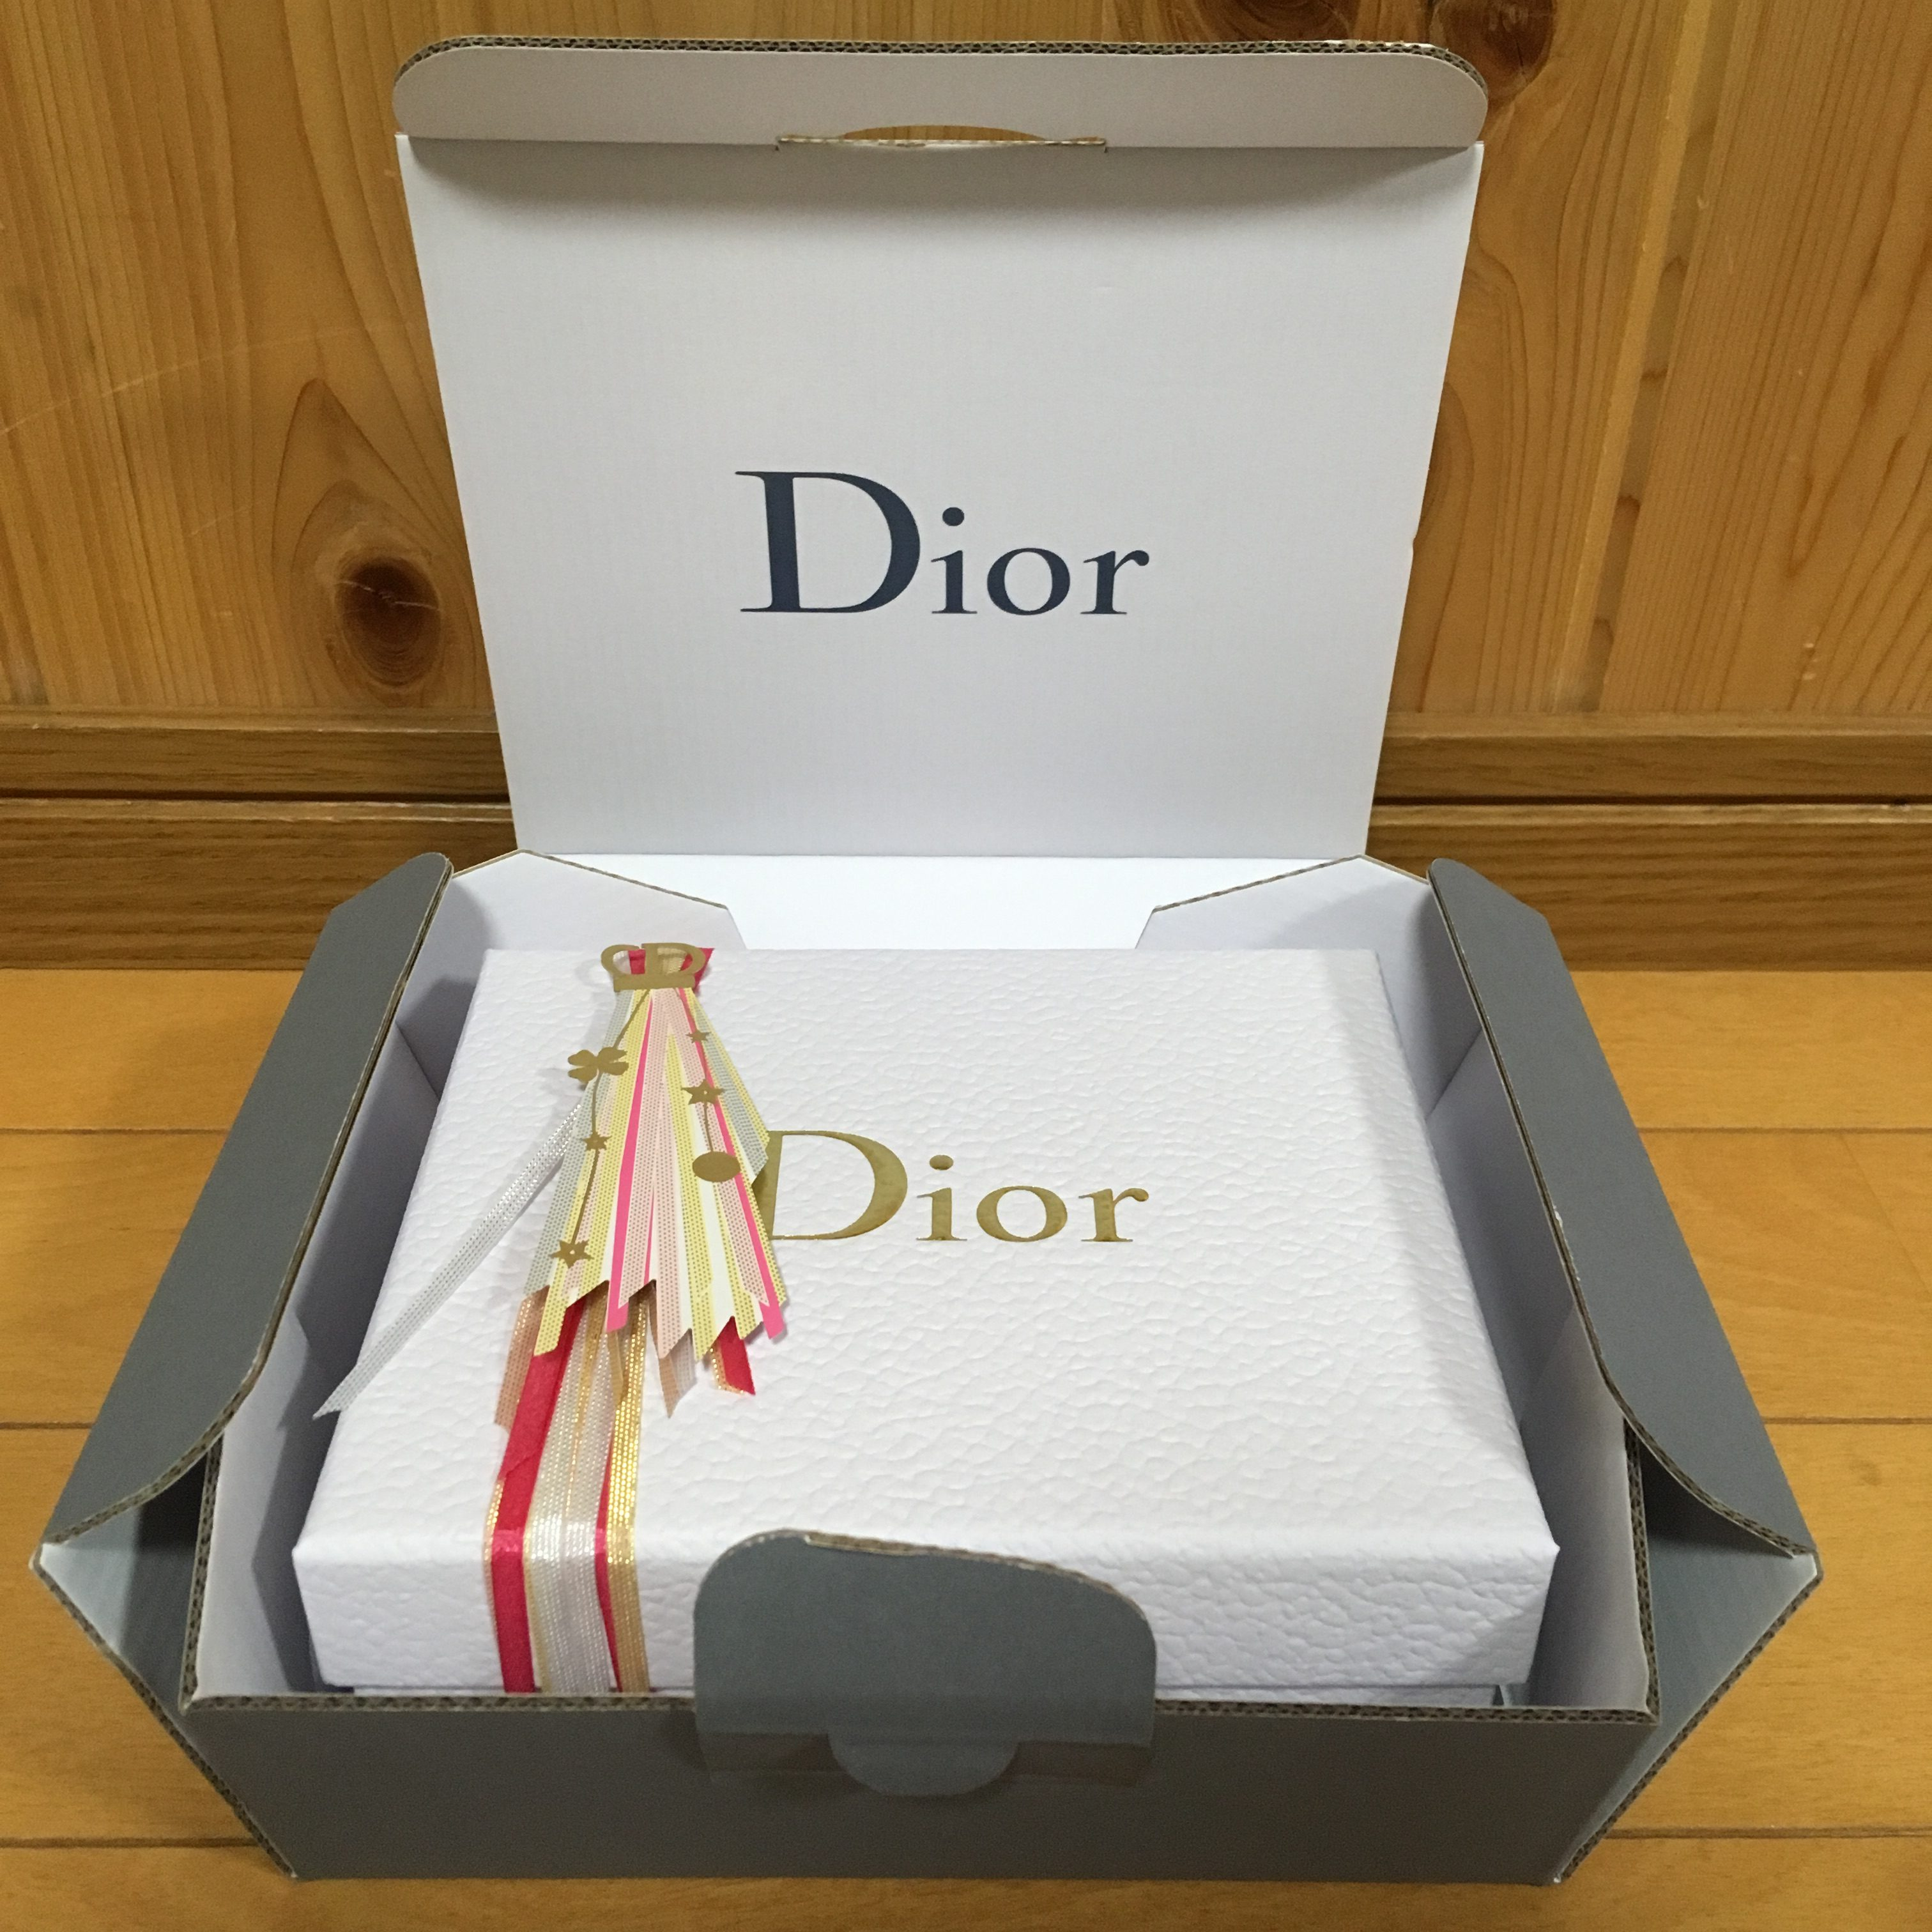 new style 73445 52fe1 Dior】ホリデーラッピングの際に買ったスクラブバームを、今更 ...